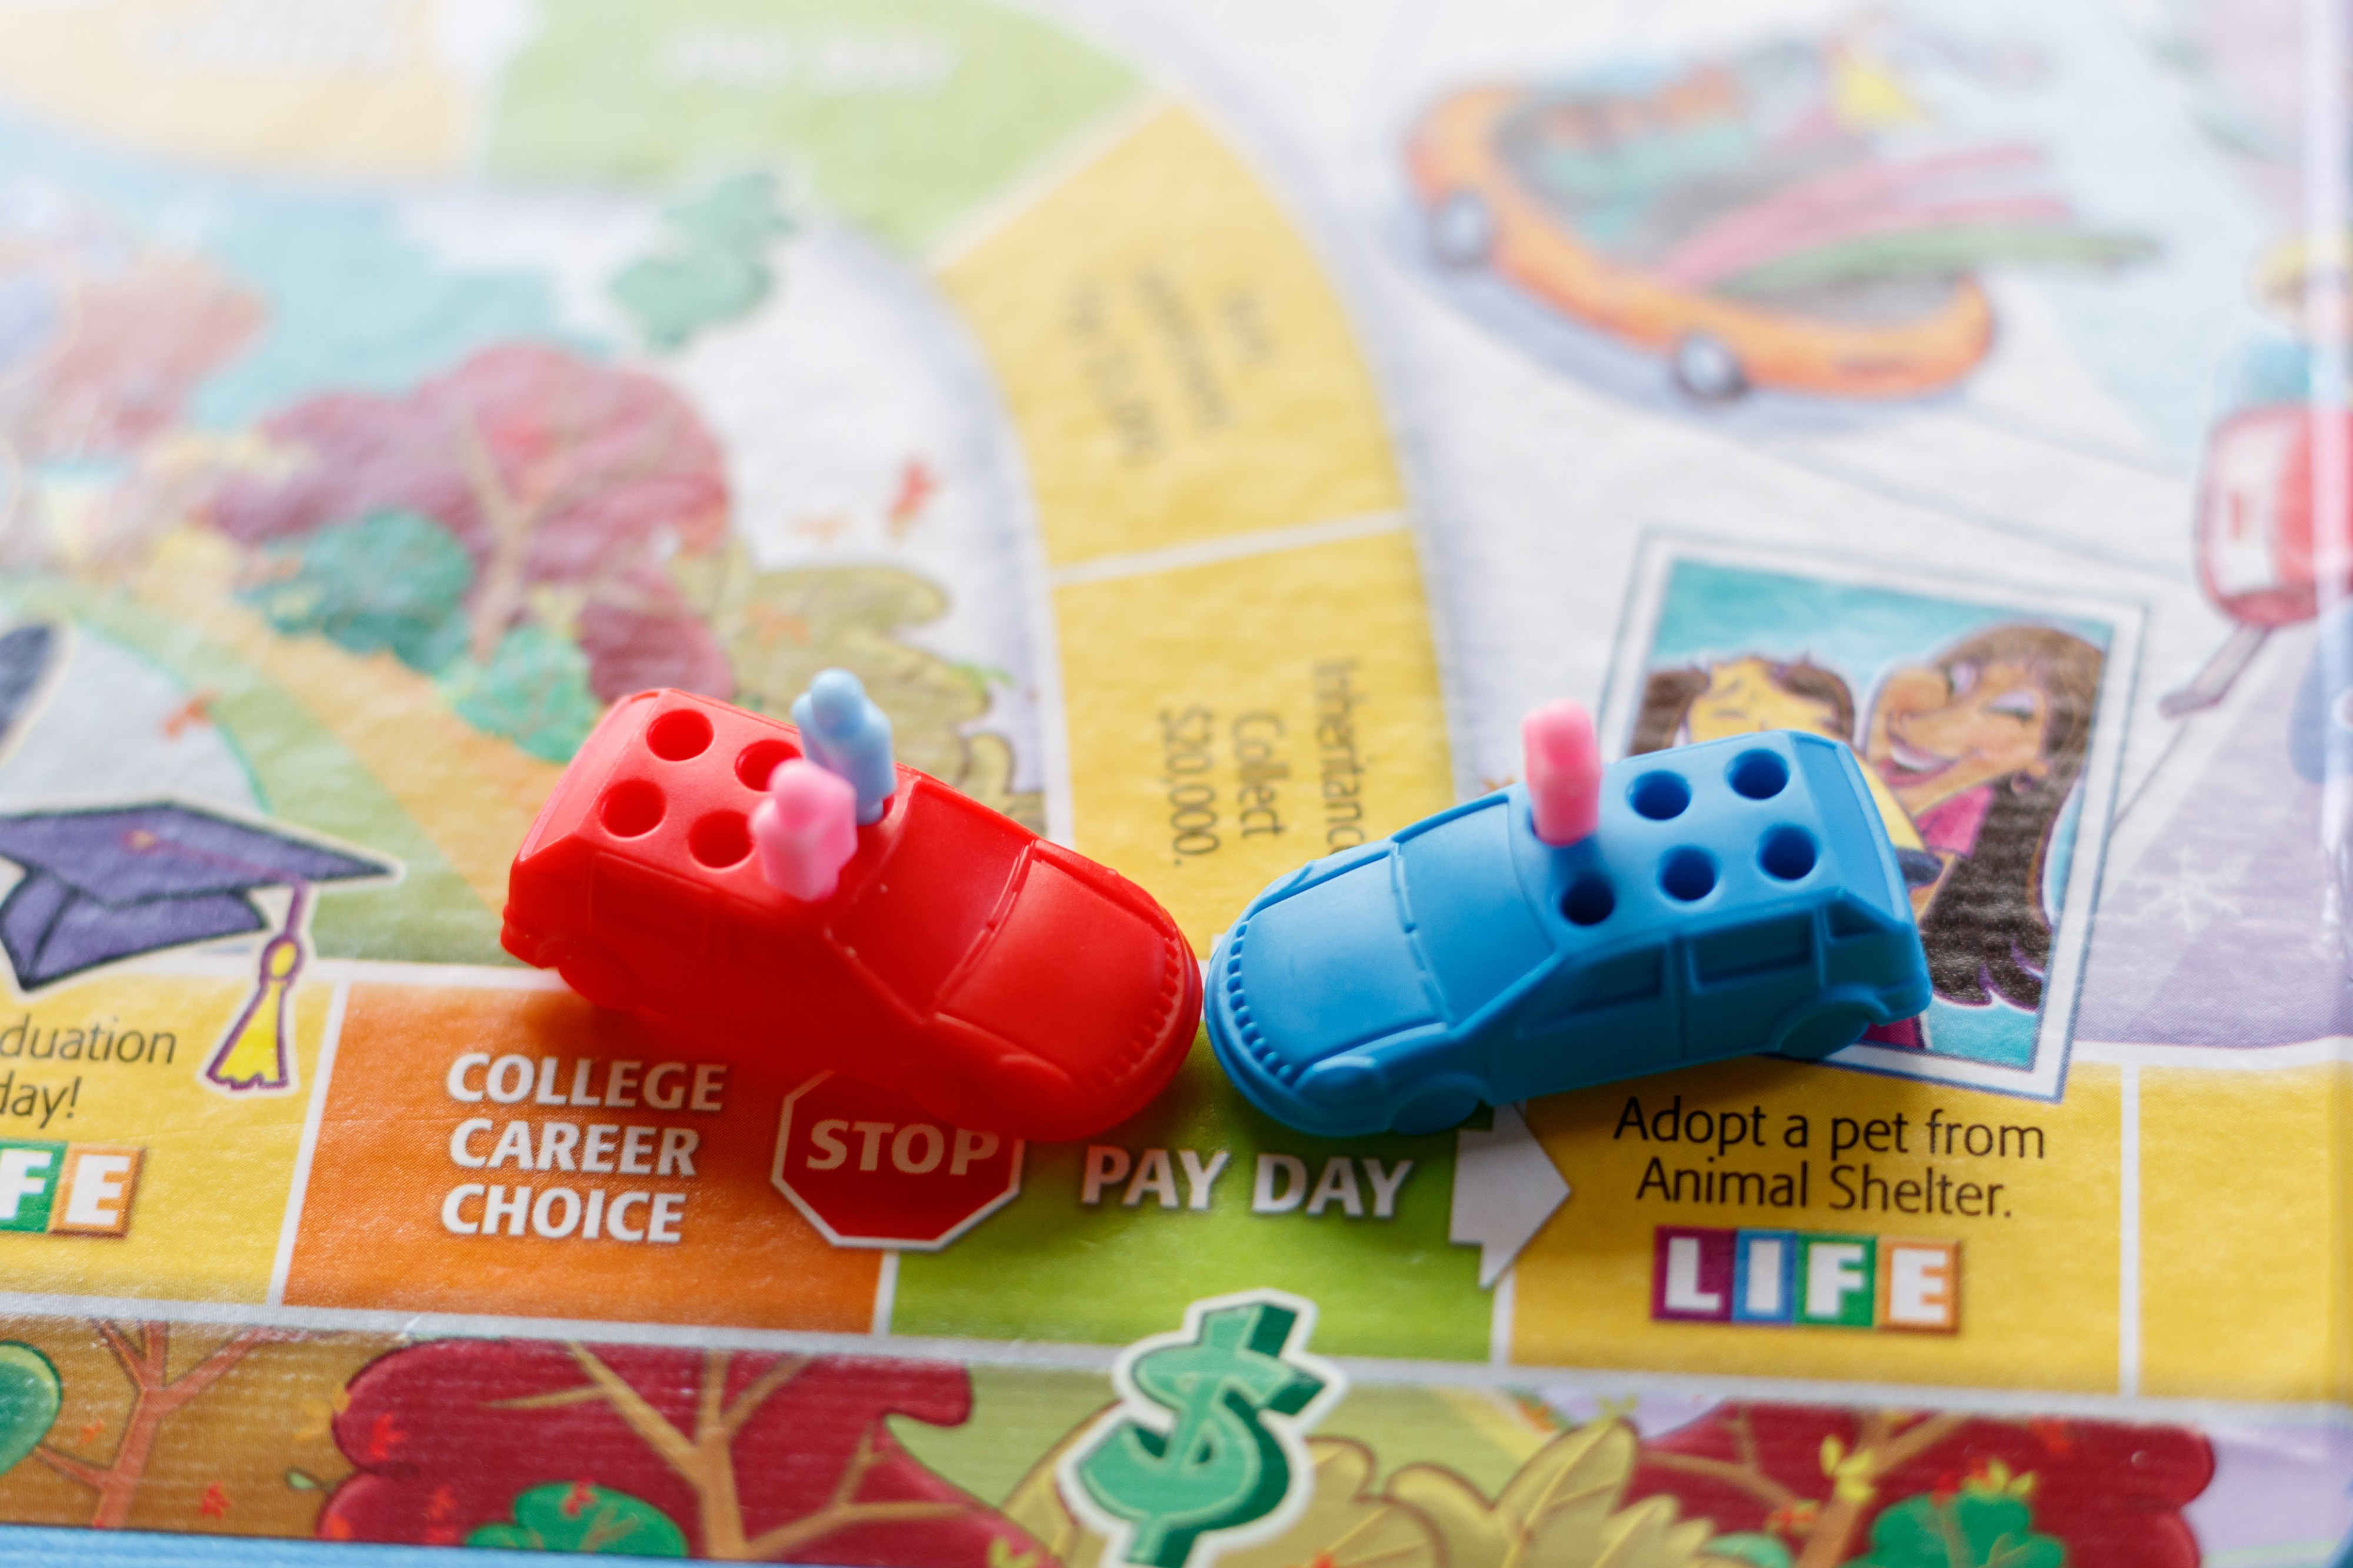 Photo depicting a car crash using the board and game pieces from The Game of Life